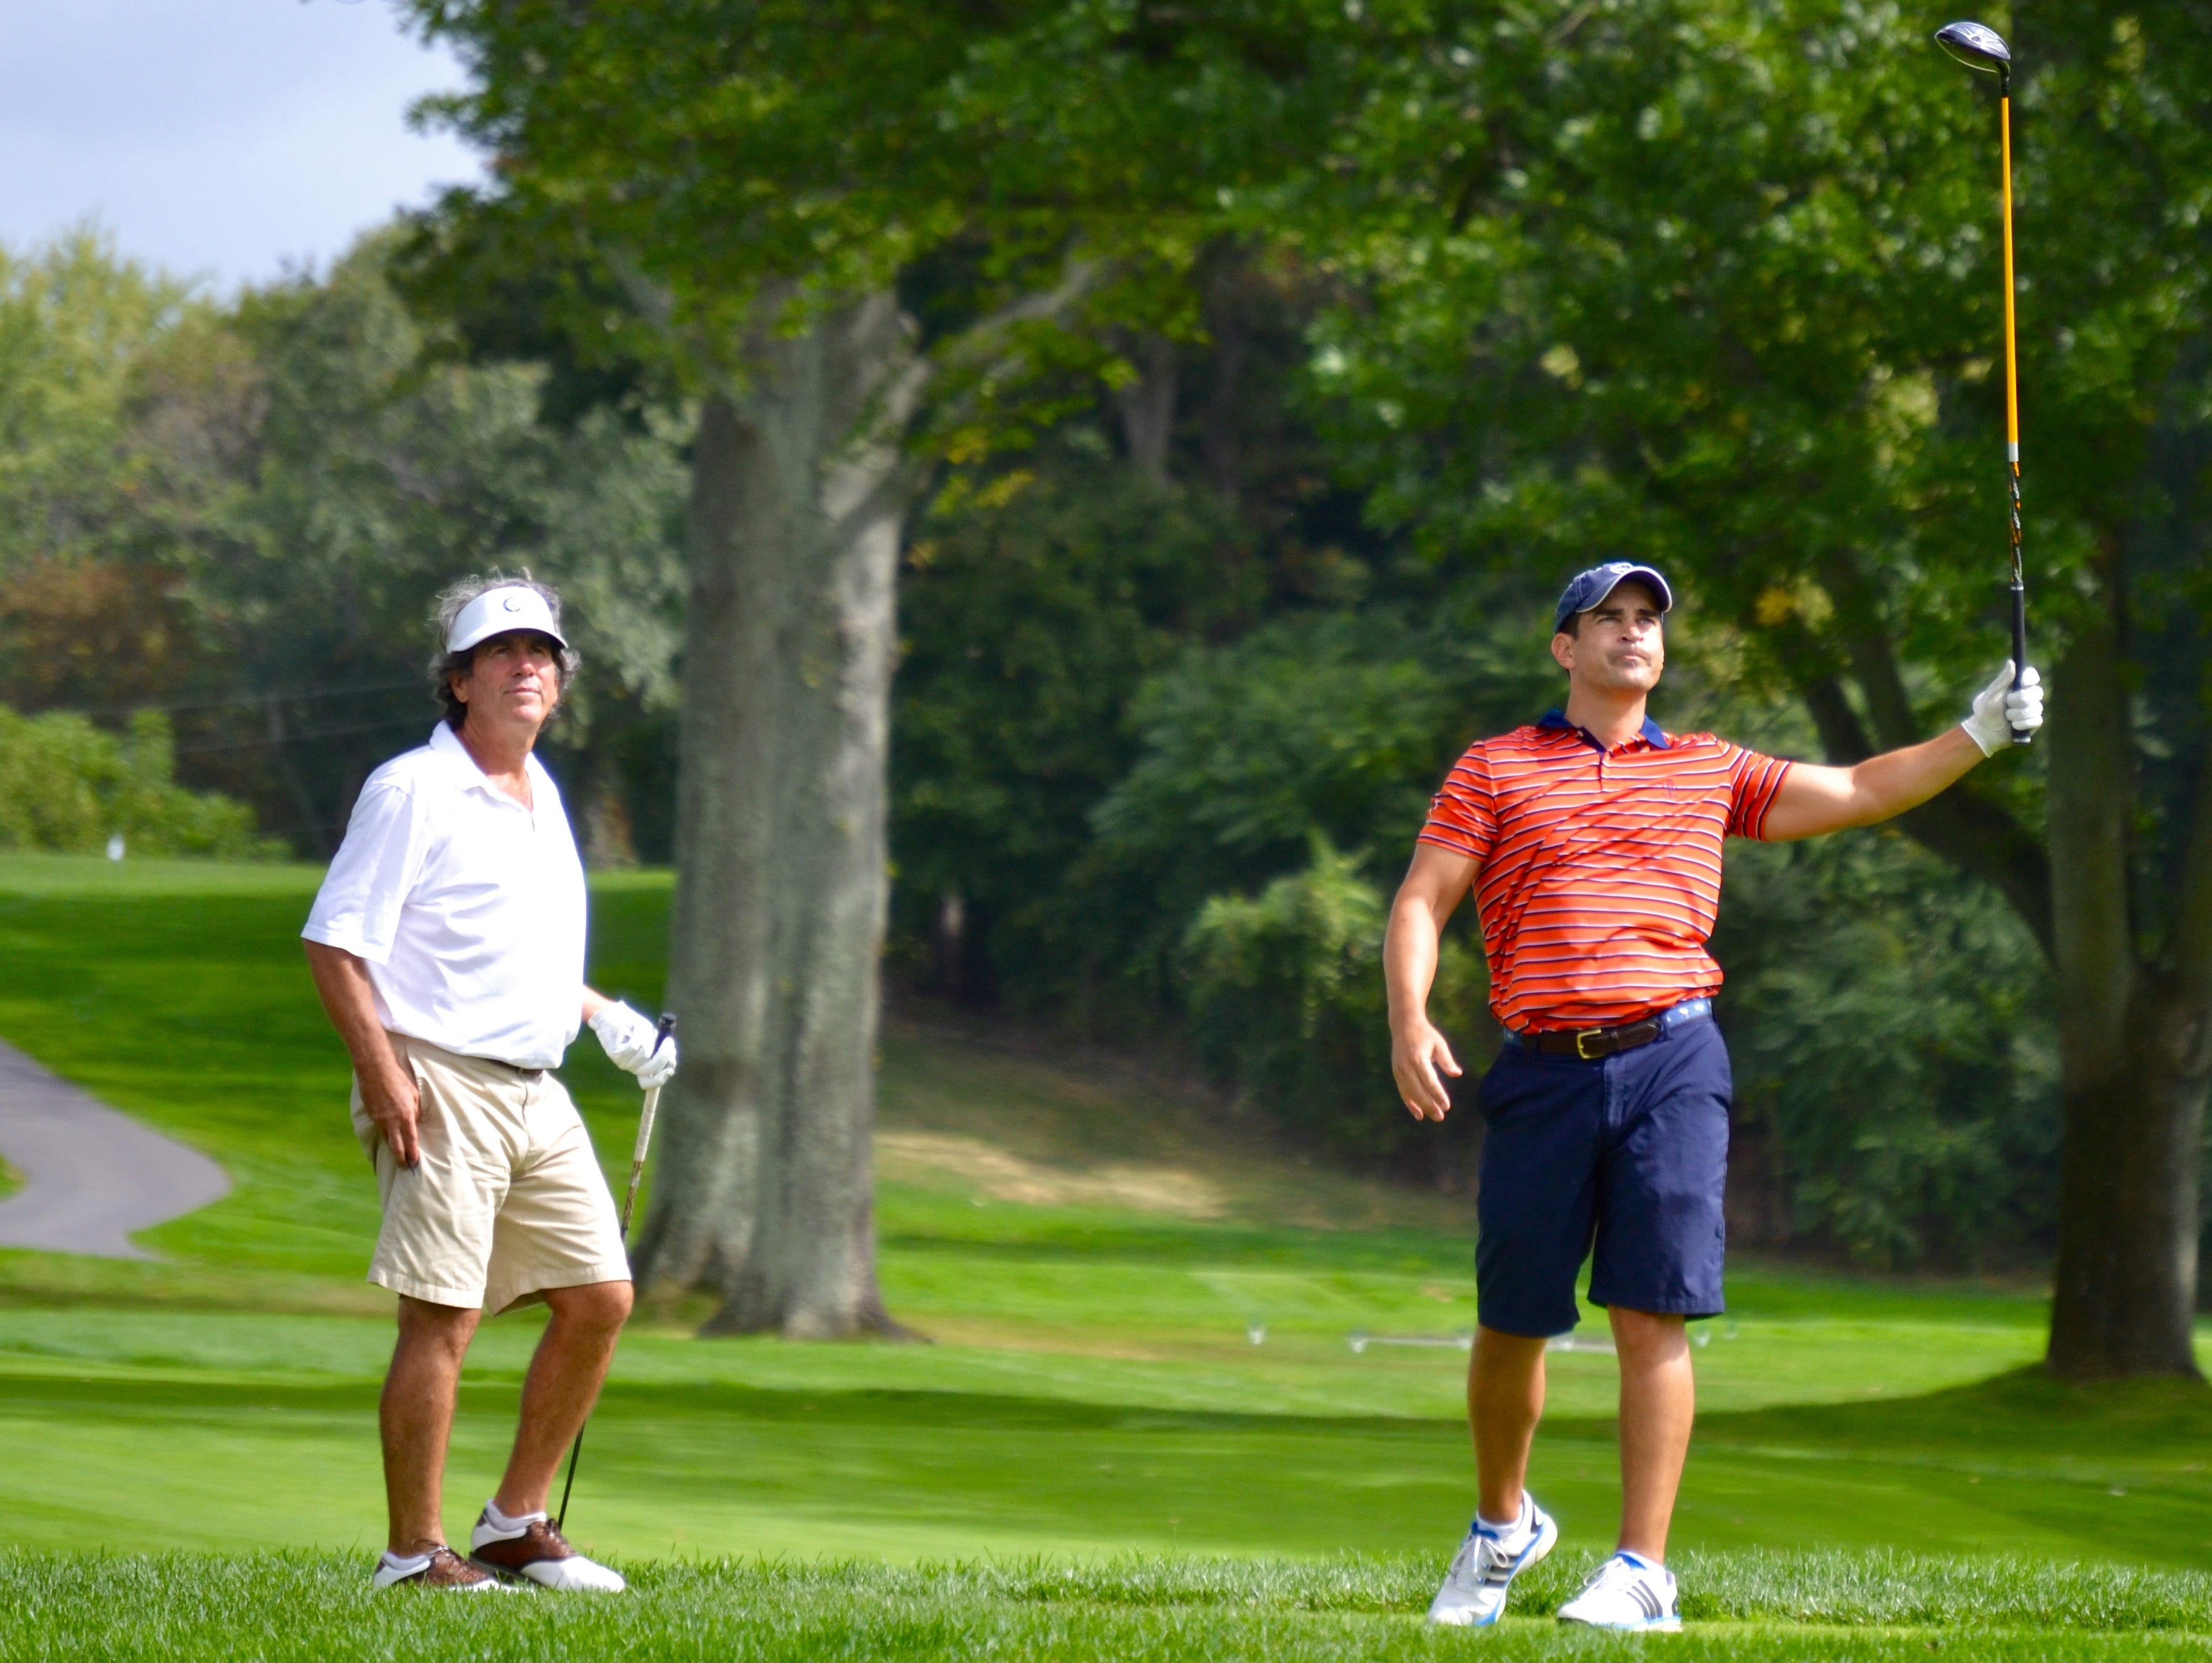 Michael Karger (right) watches his drive fade into the rough alongside the 18th hole at Nassau Country Club Tuesday while John Ervasti looks on.